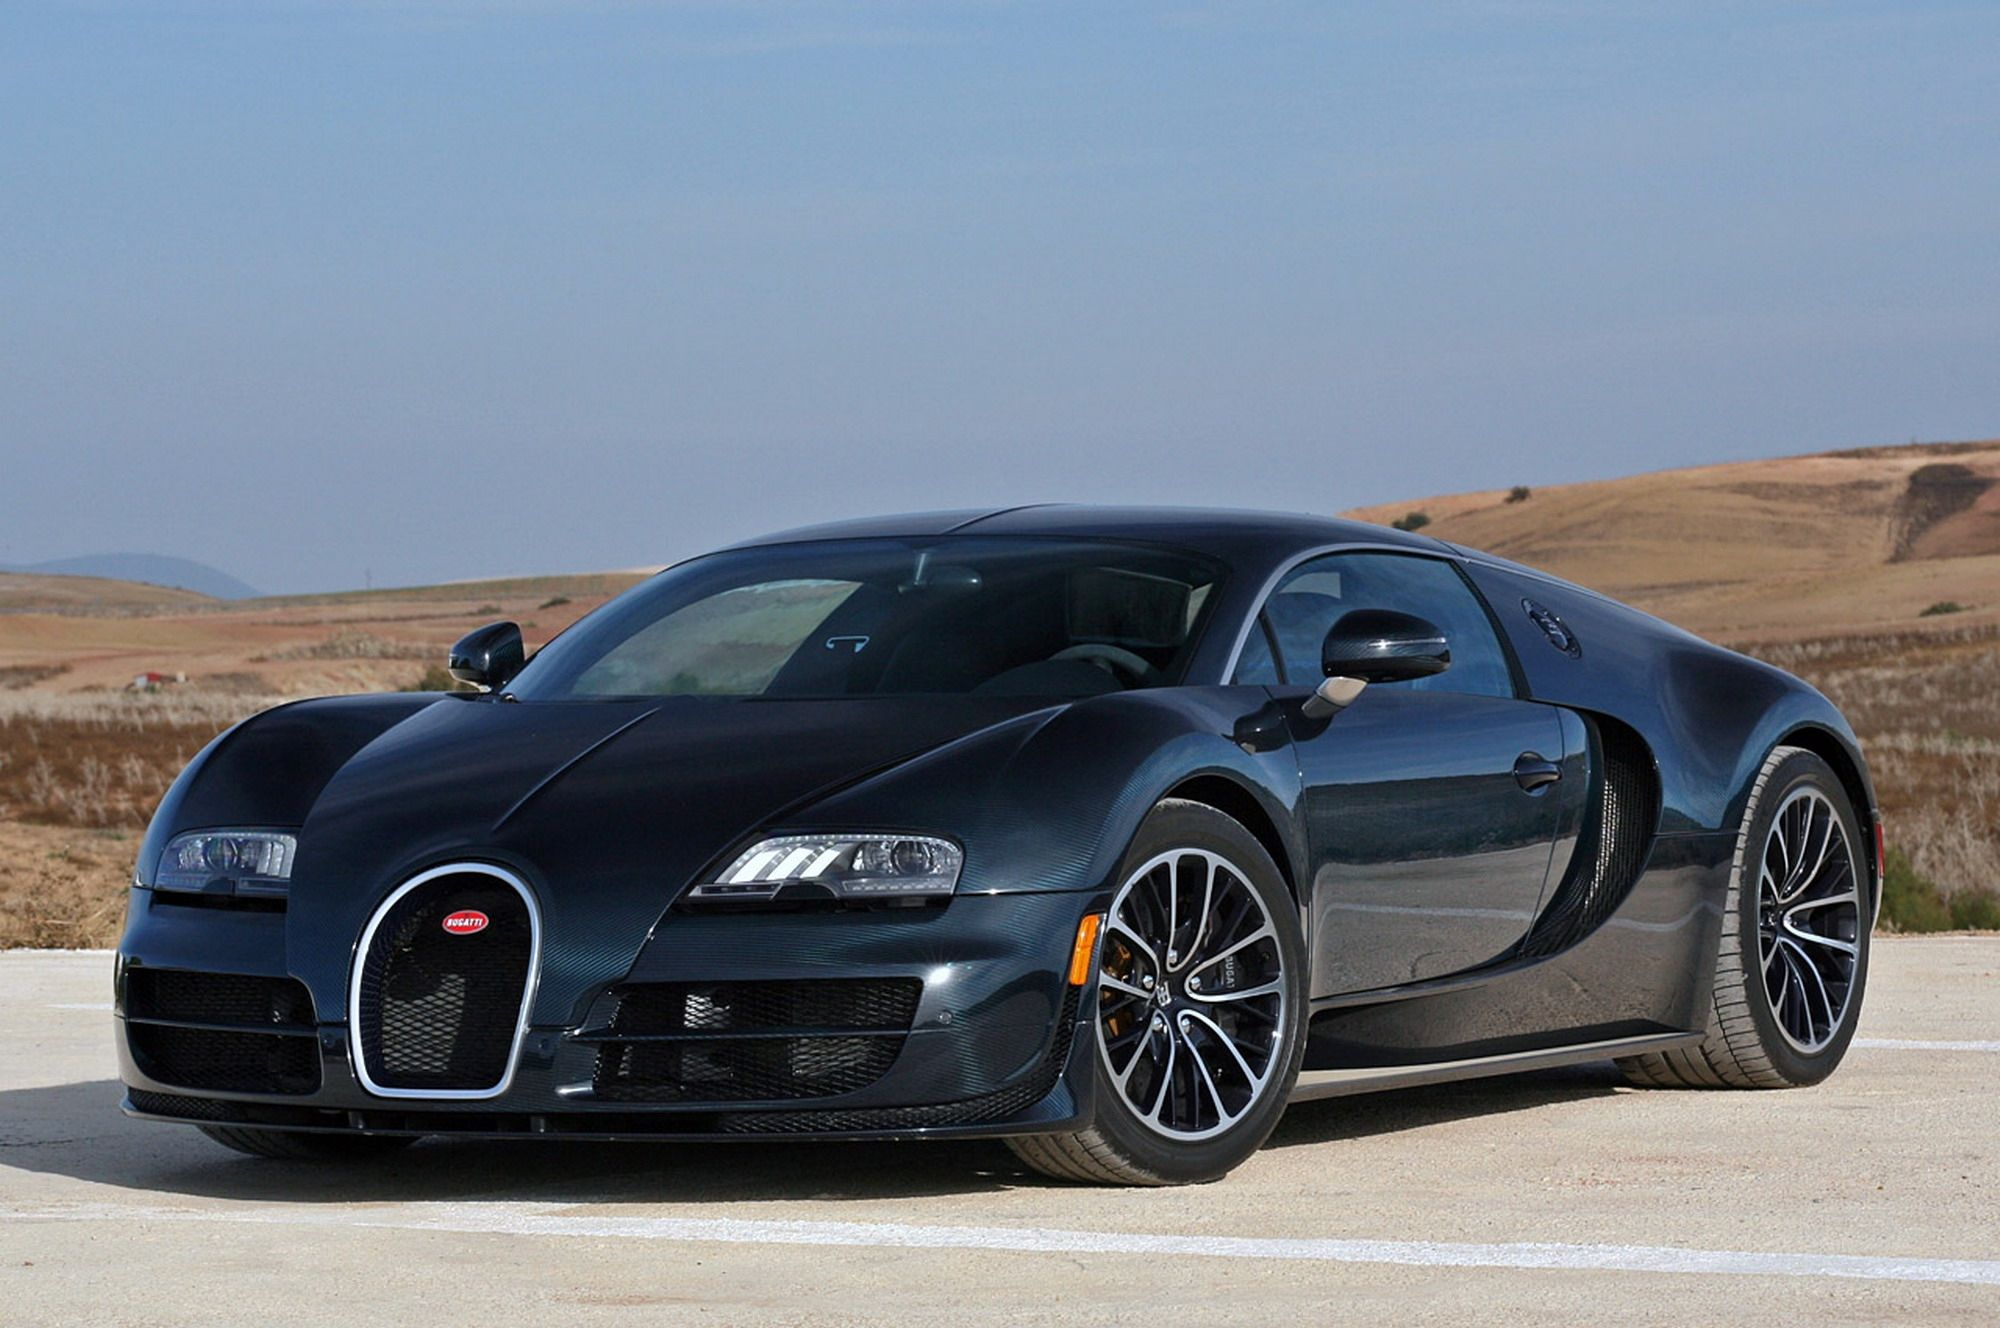 547f6c8ed14e2efe9b21a6e84124fc02 Amazing Price Of Bugatti Veyron 16.4 Grand Sport Vitesse In Real Racing 3 Cars Trend